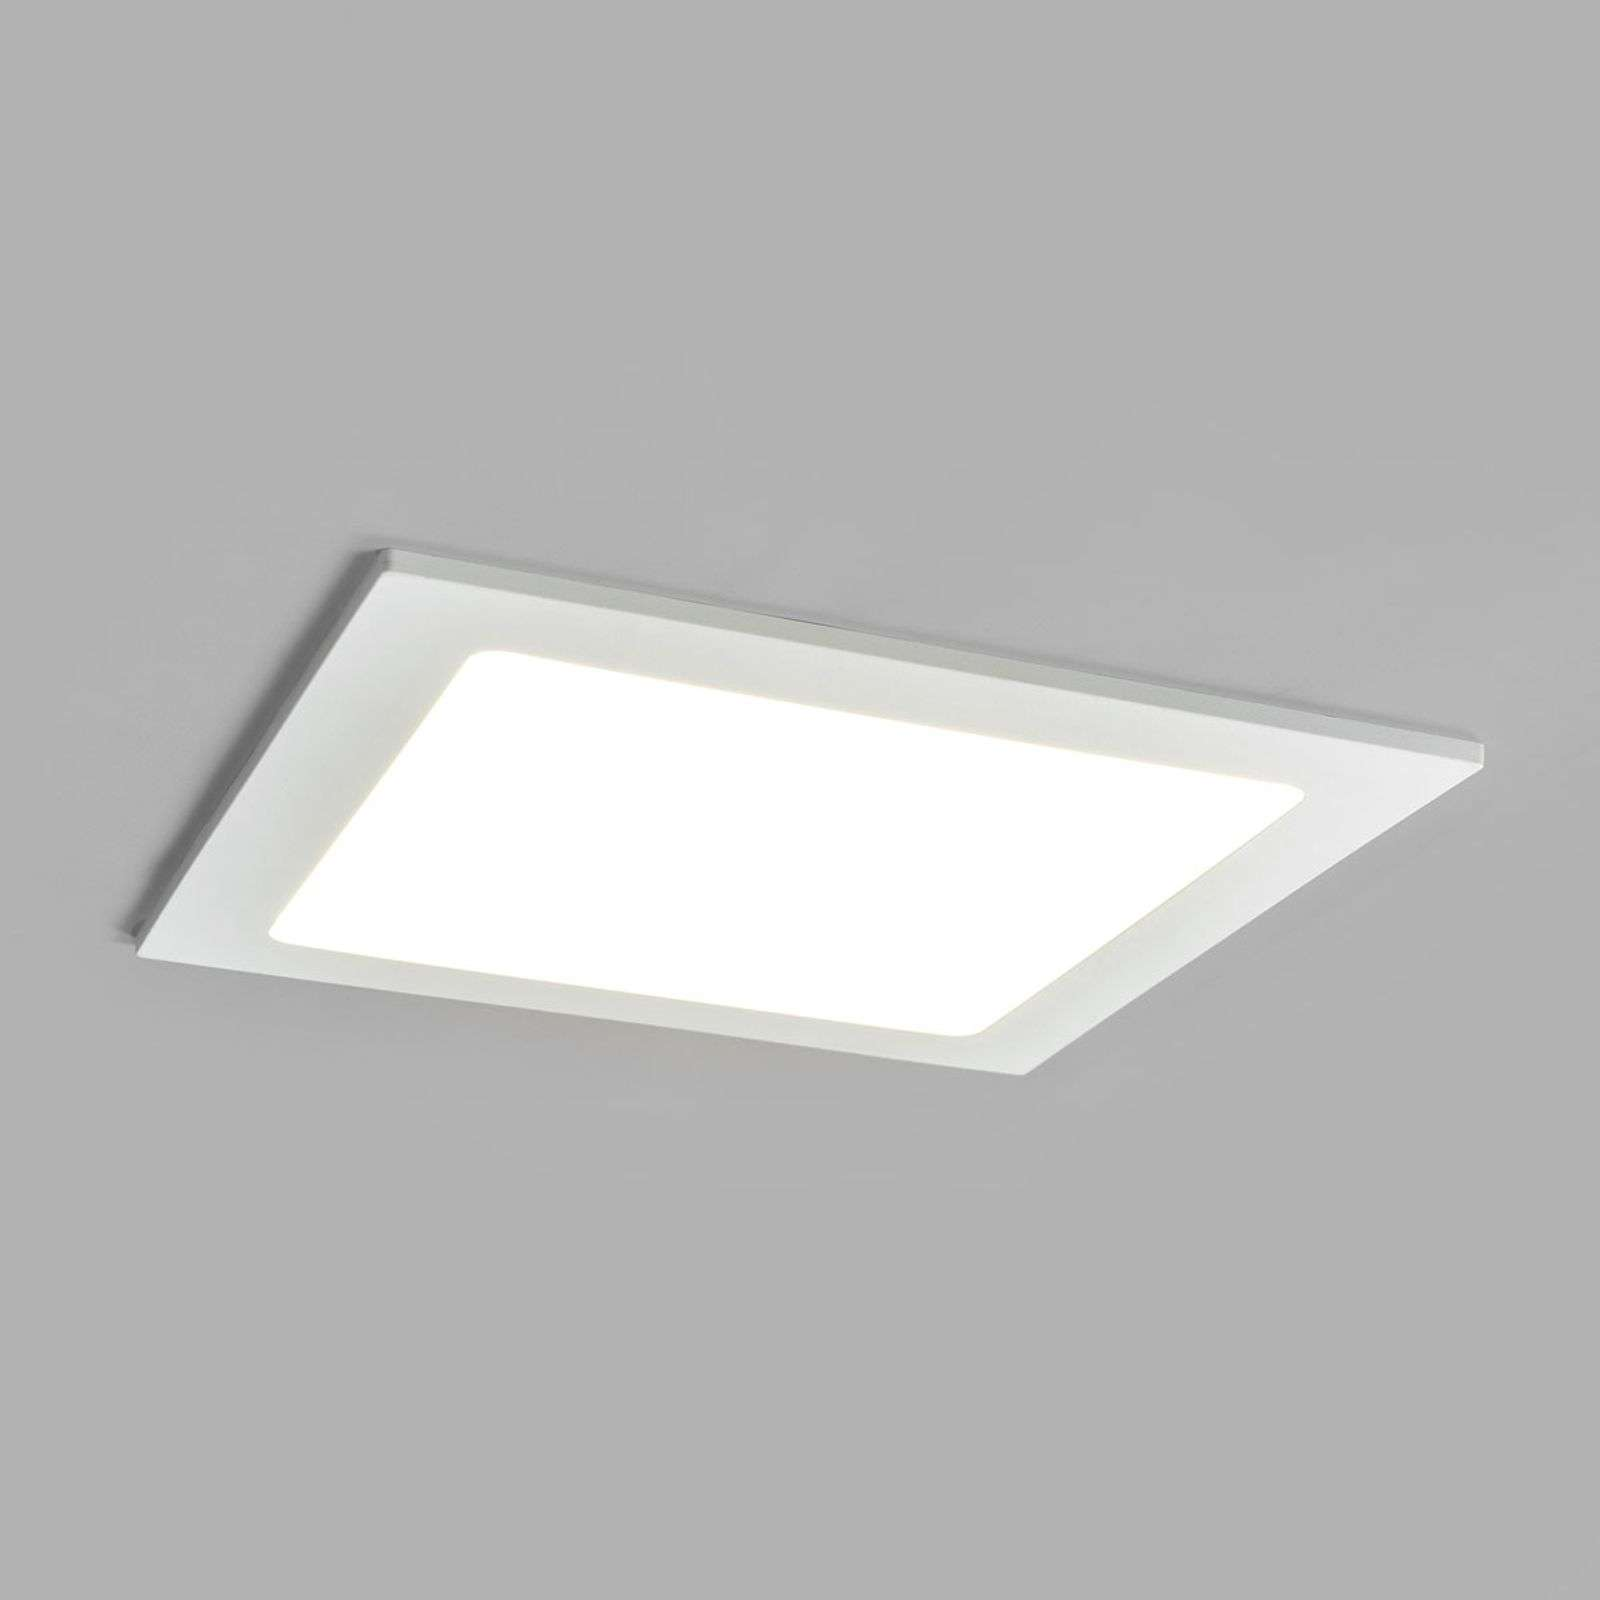 Lampada LED downlight Joki piatta IP44